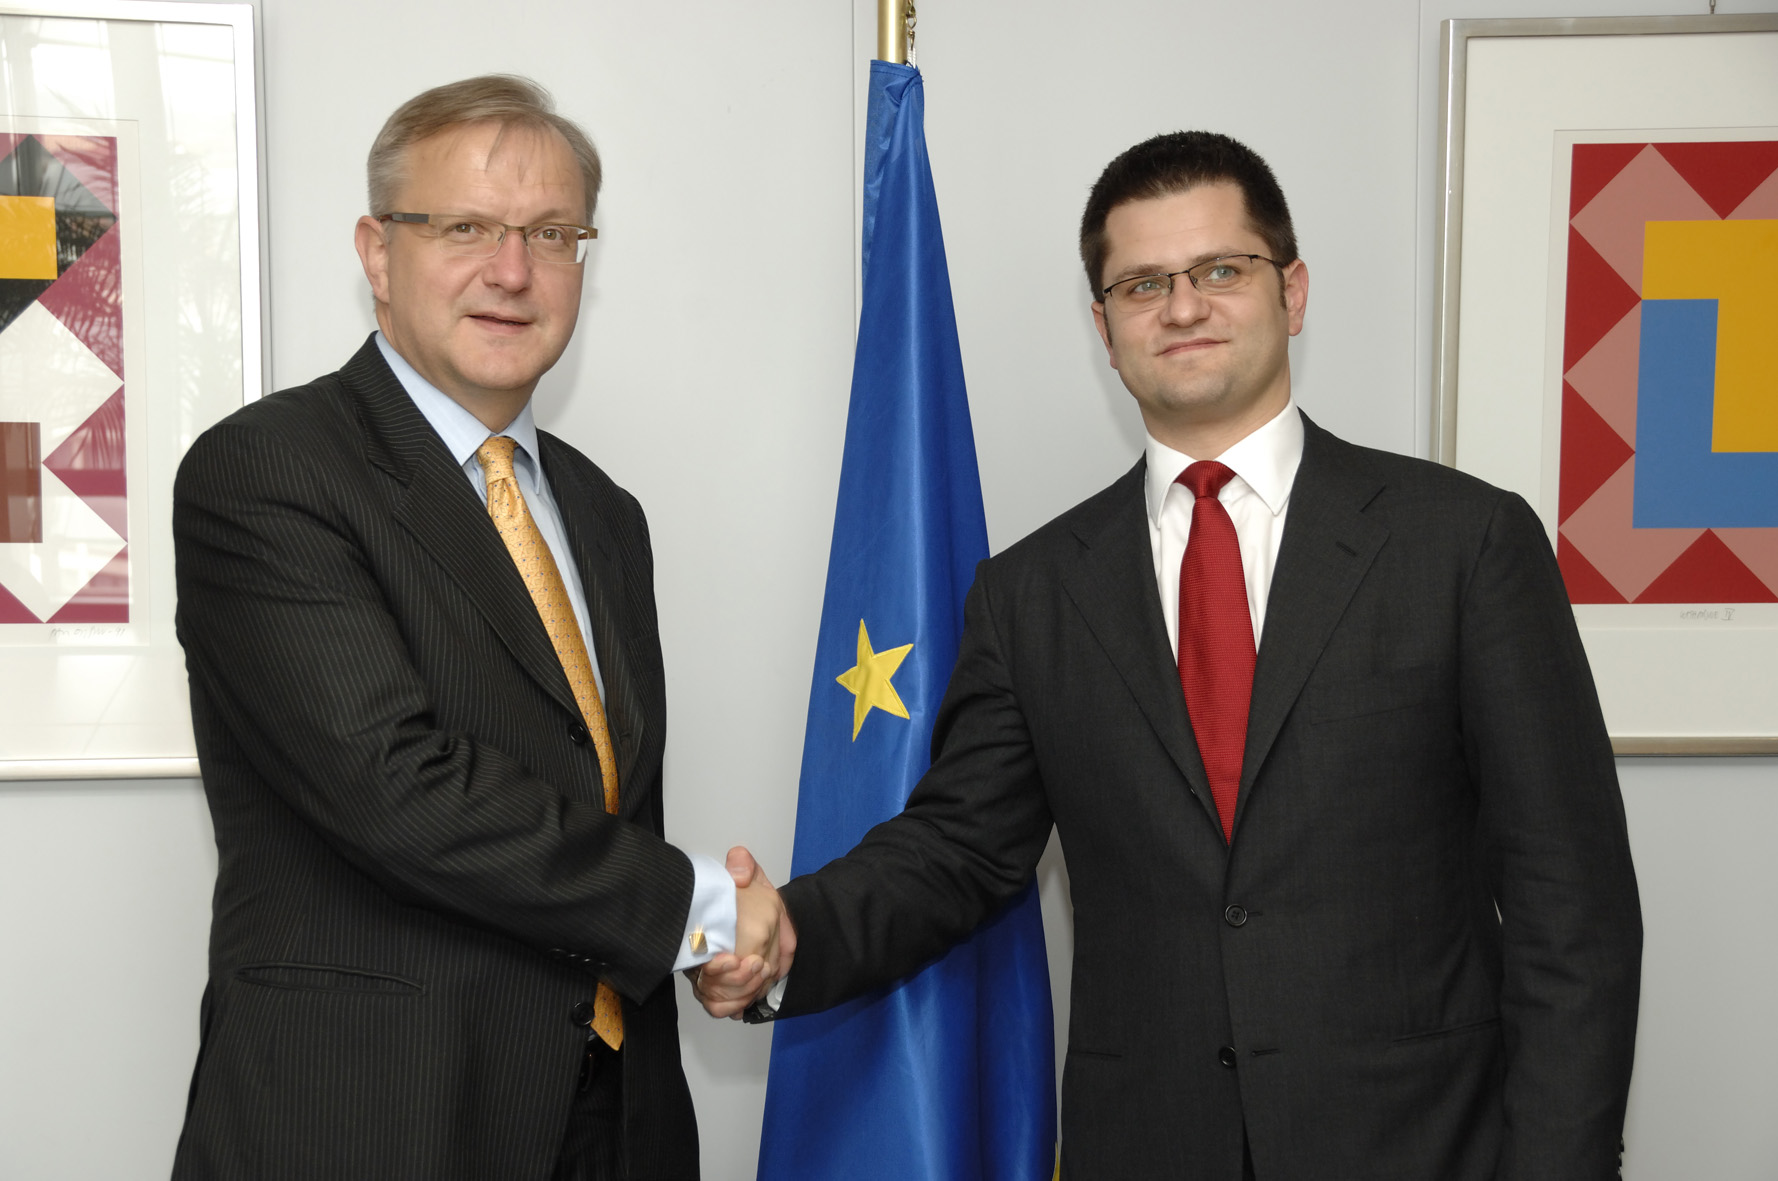 Visit by Vuk Jeremic, Serbian Minister for Foreign Affairs, to the EC